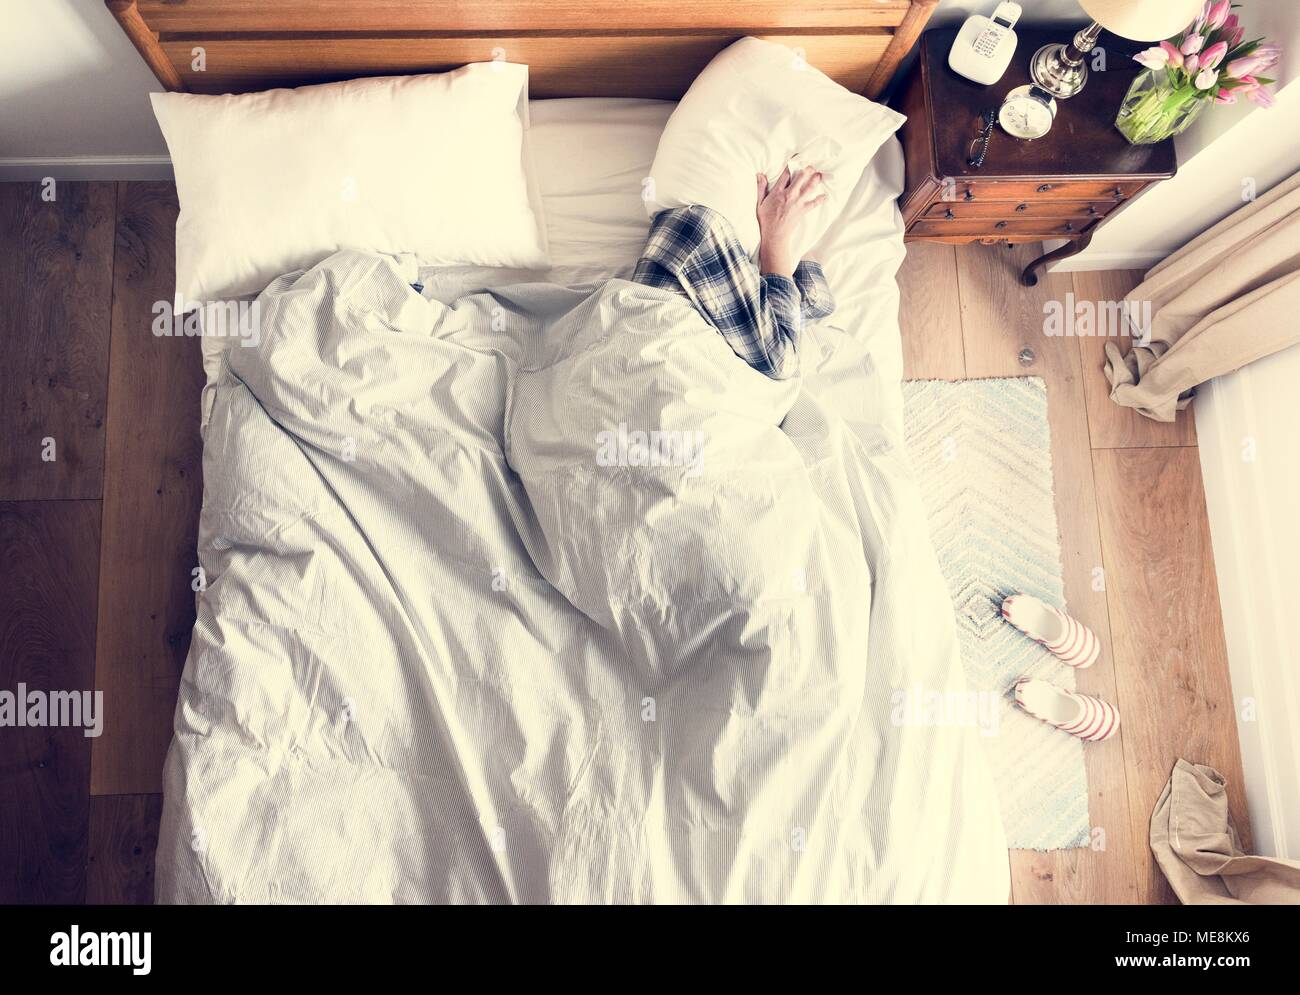 Person on bed insomnia and noise pollution concept - Stock Image